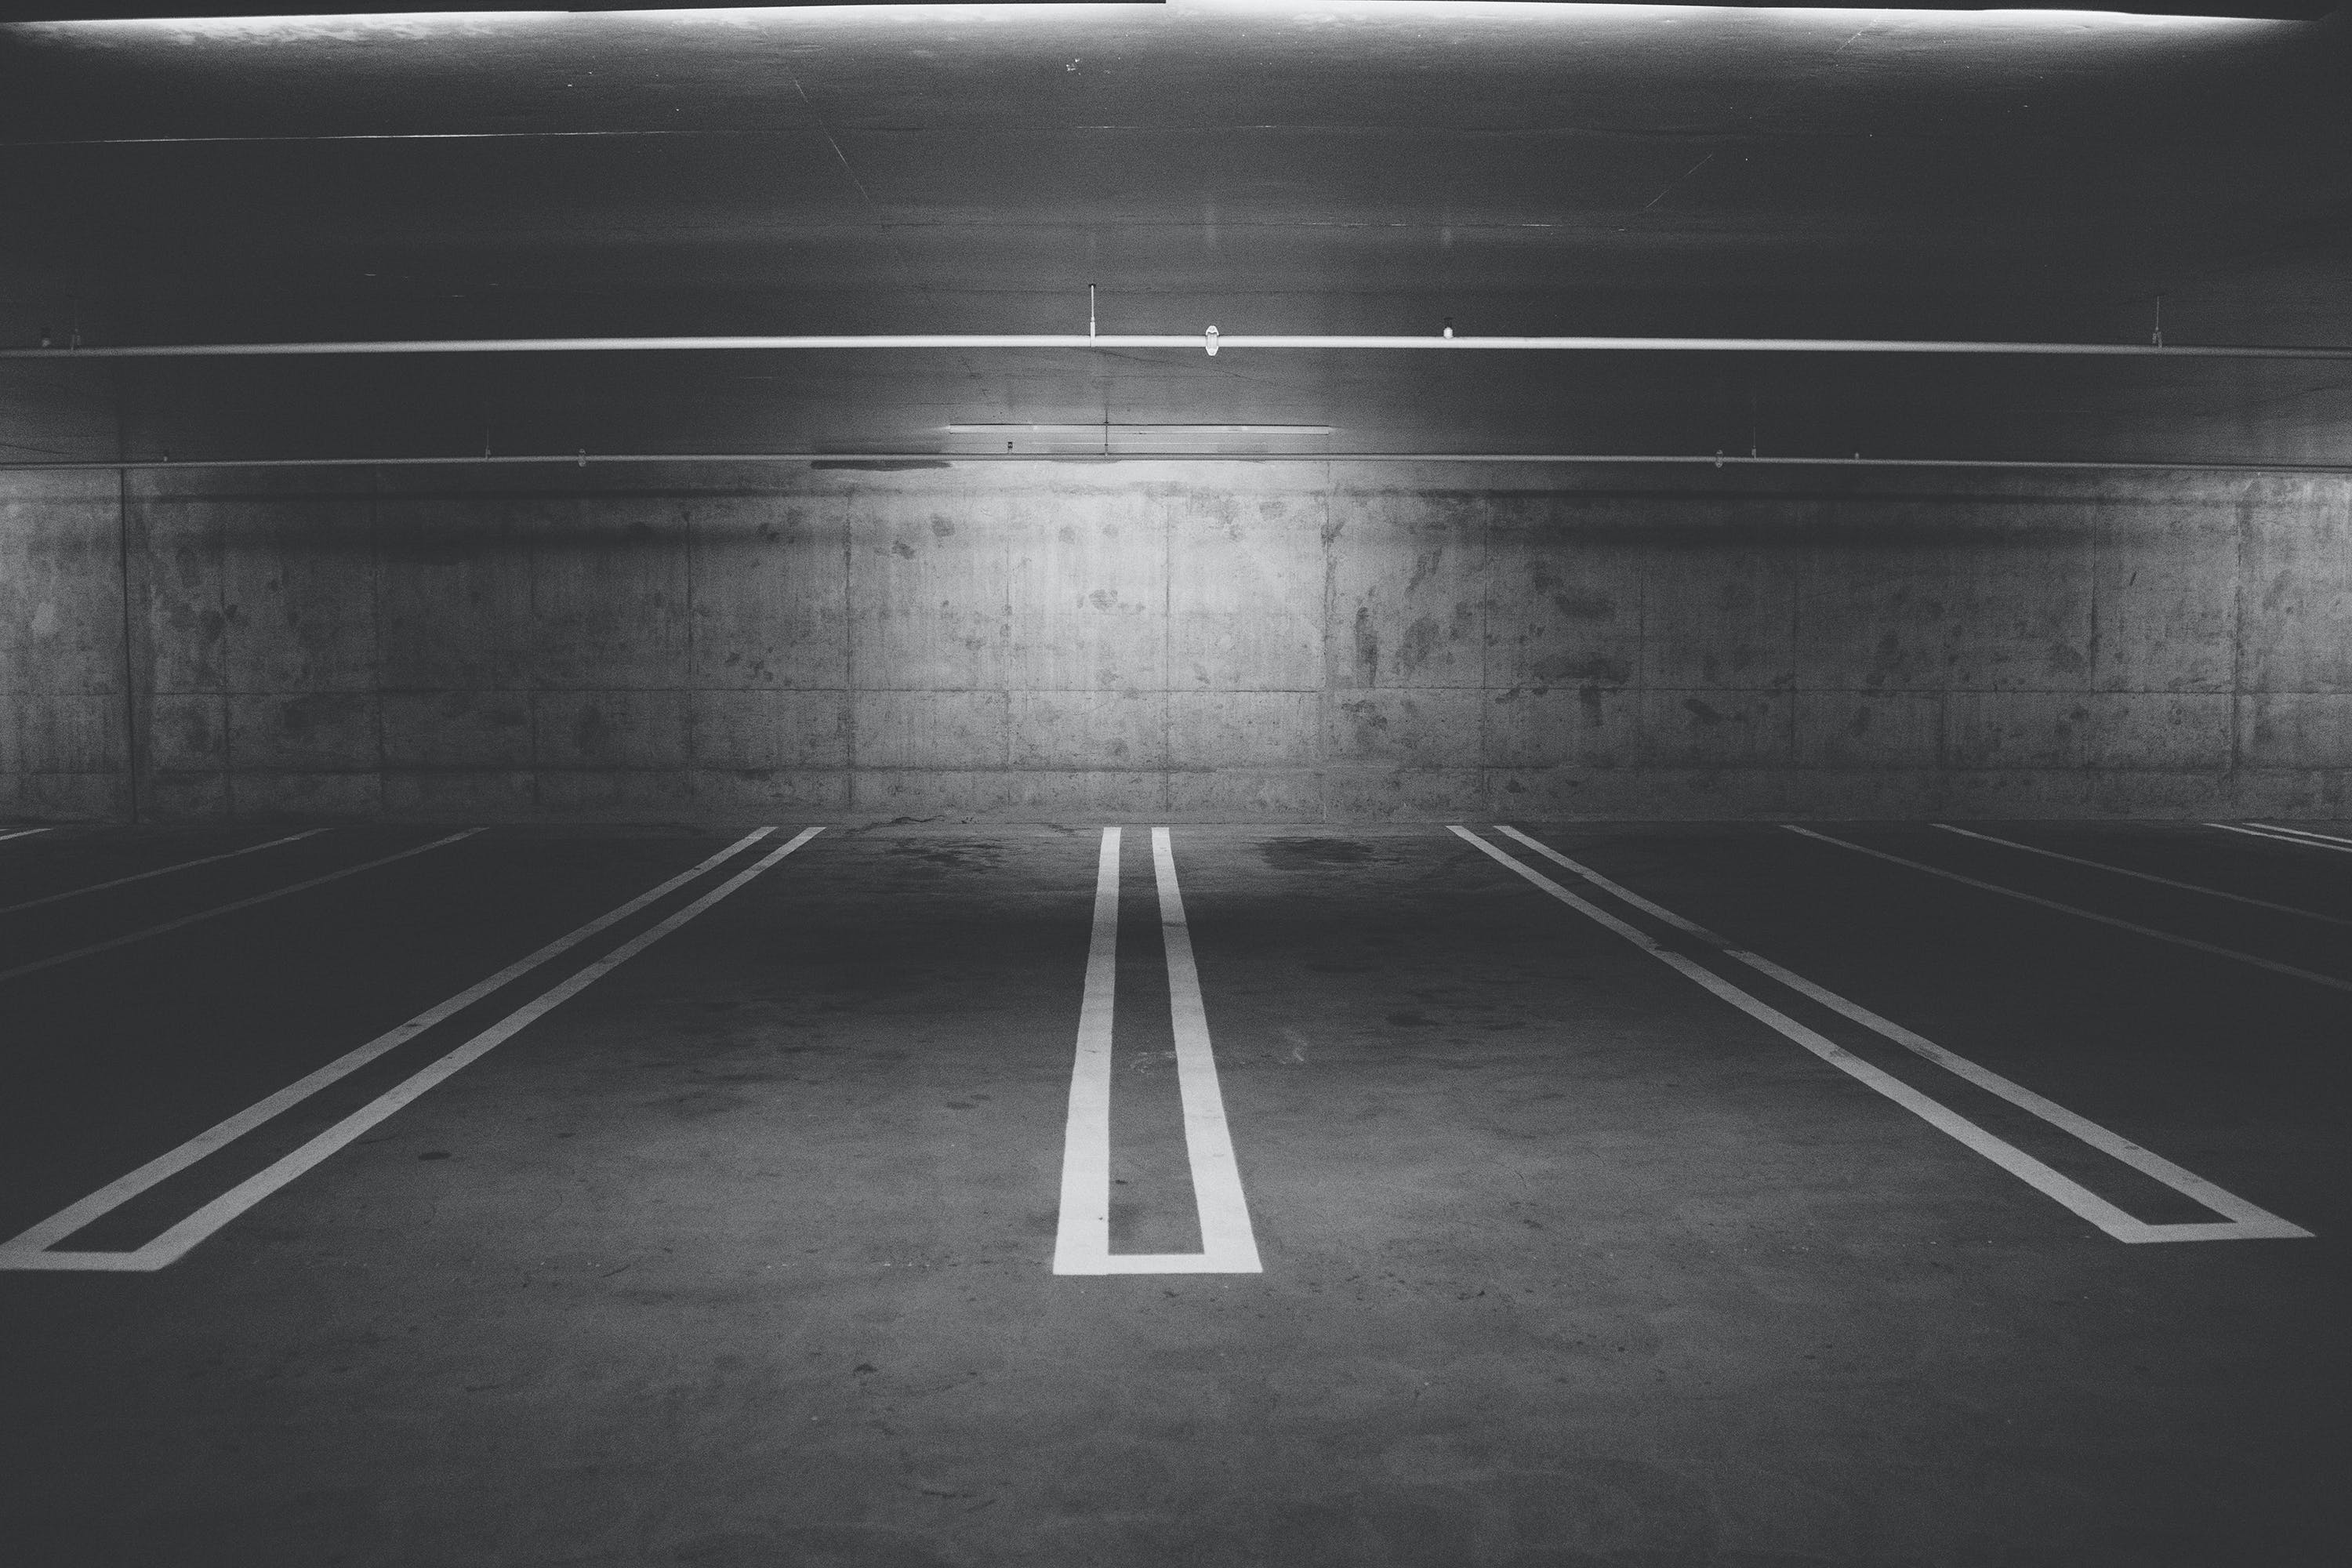 Grayscale Photography of Empty Parking Lot